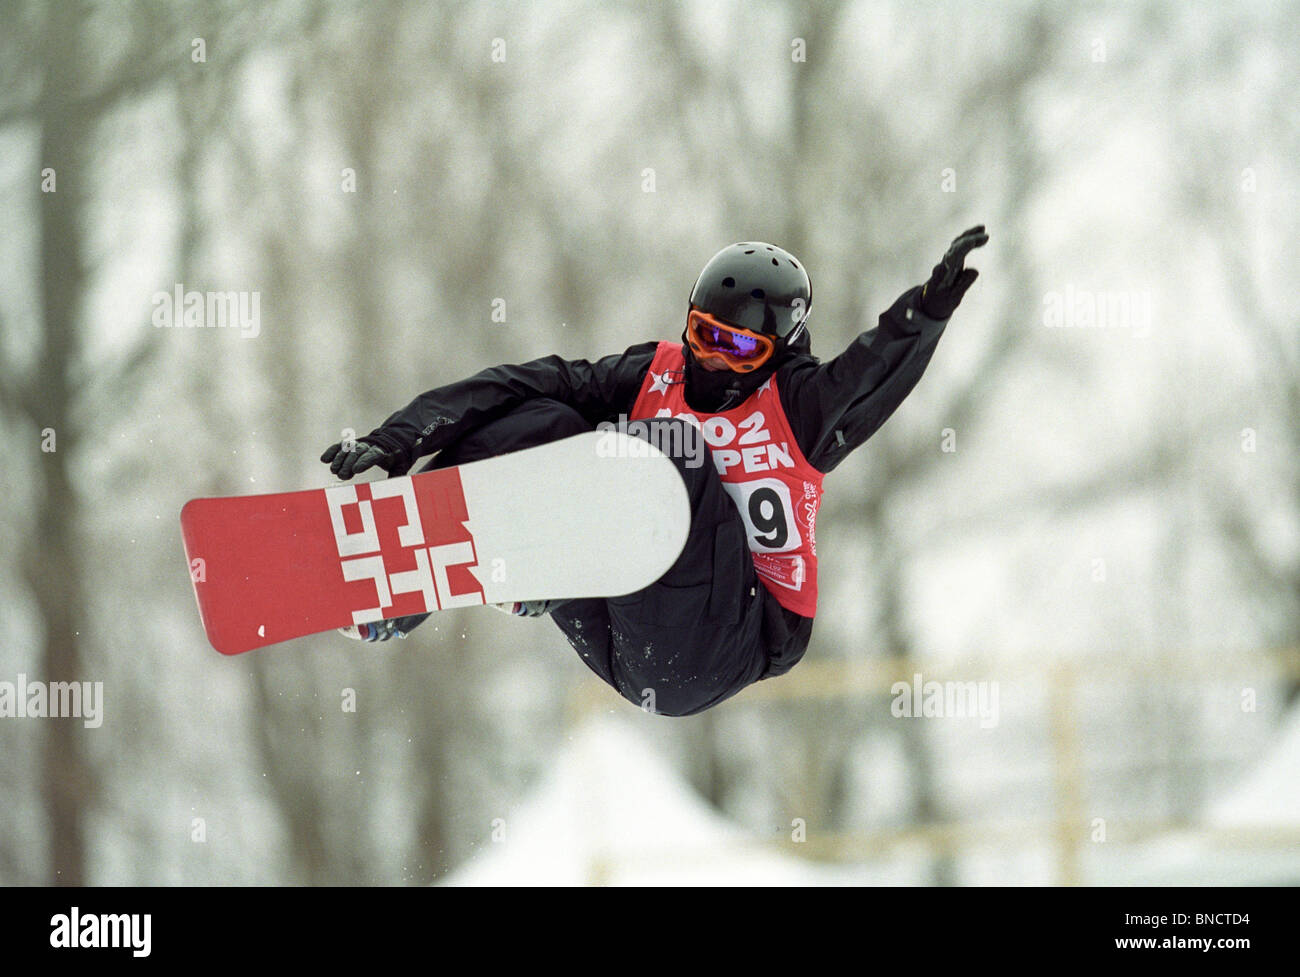 Kelly Clark (USA) competing in the snowboarding halfpipe at the 2002 US Open Snowboarding Championships. - Stock Image